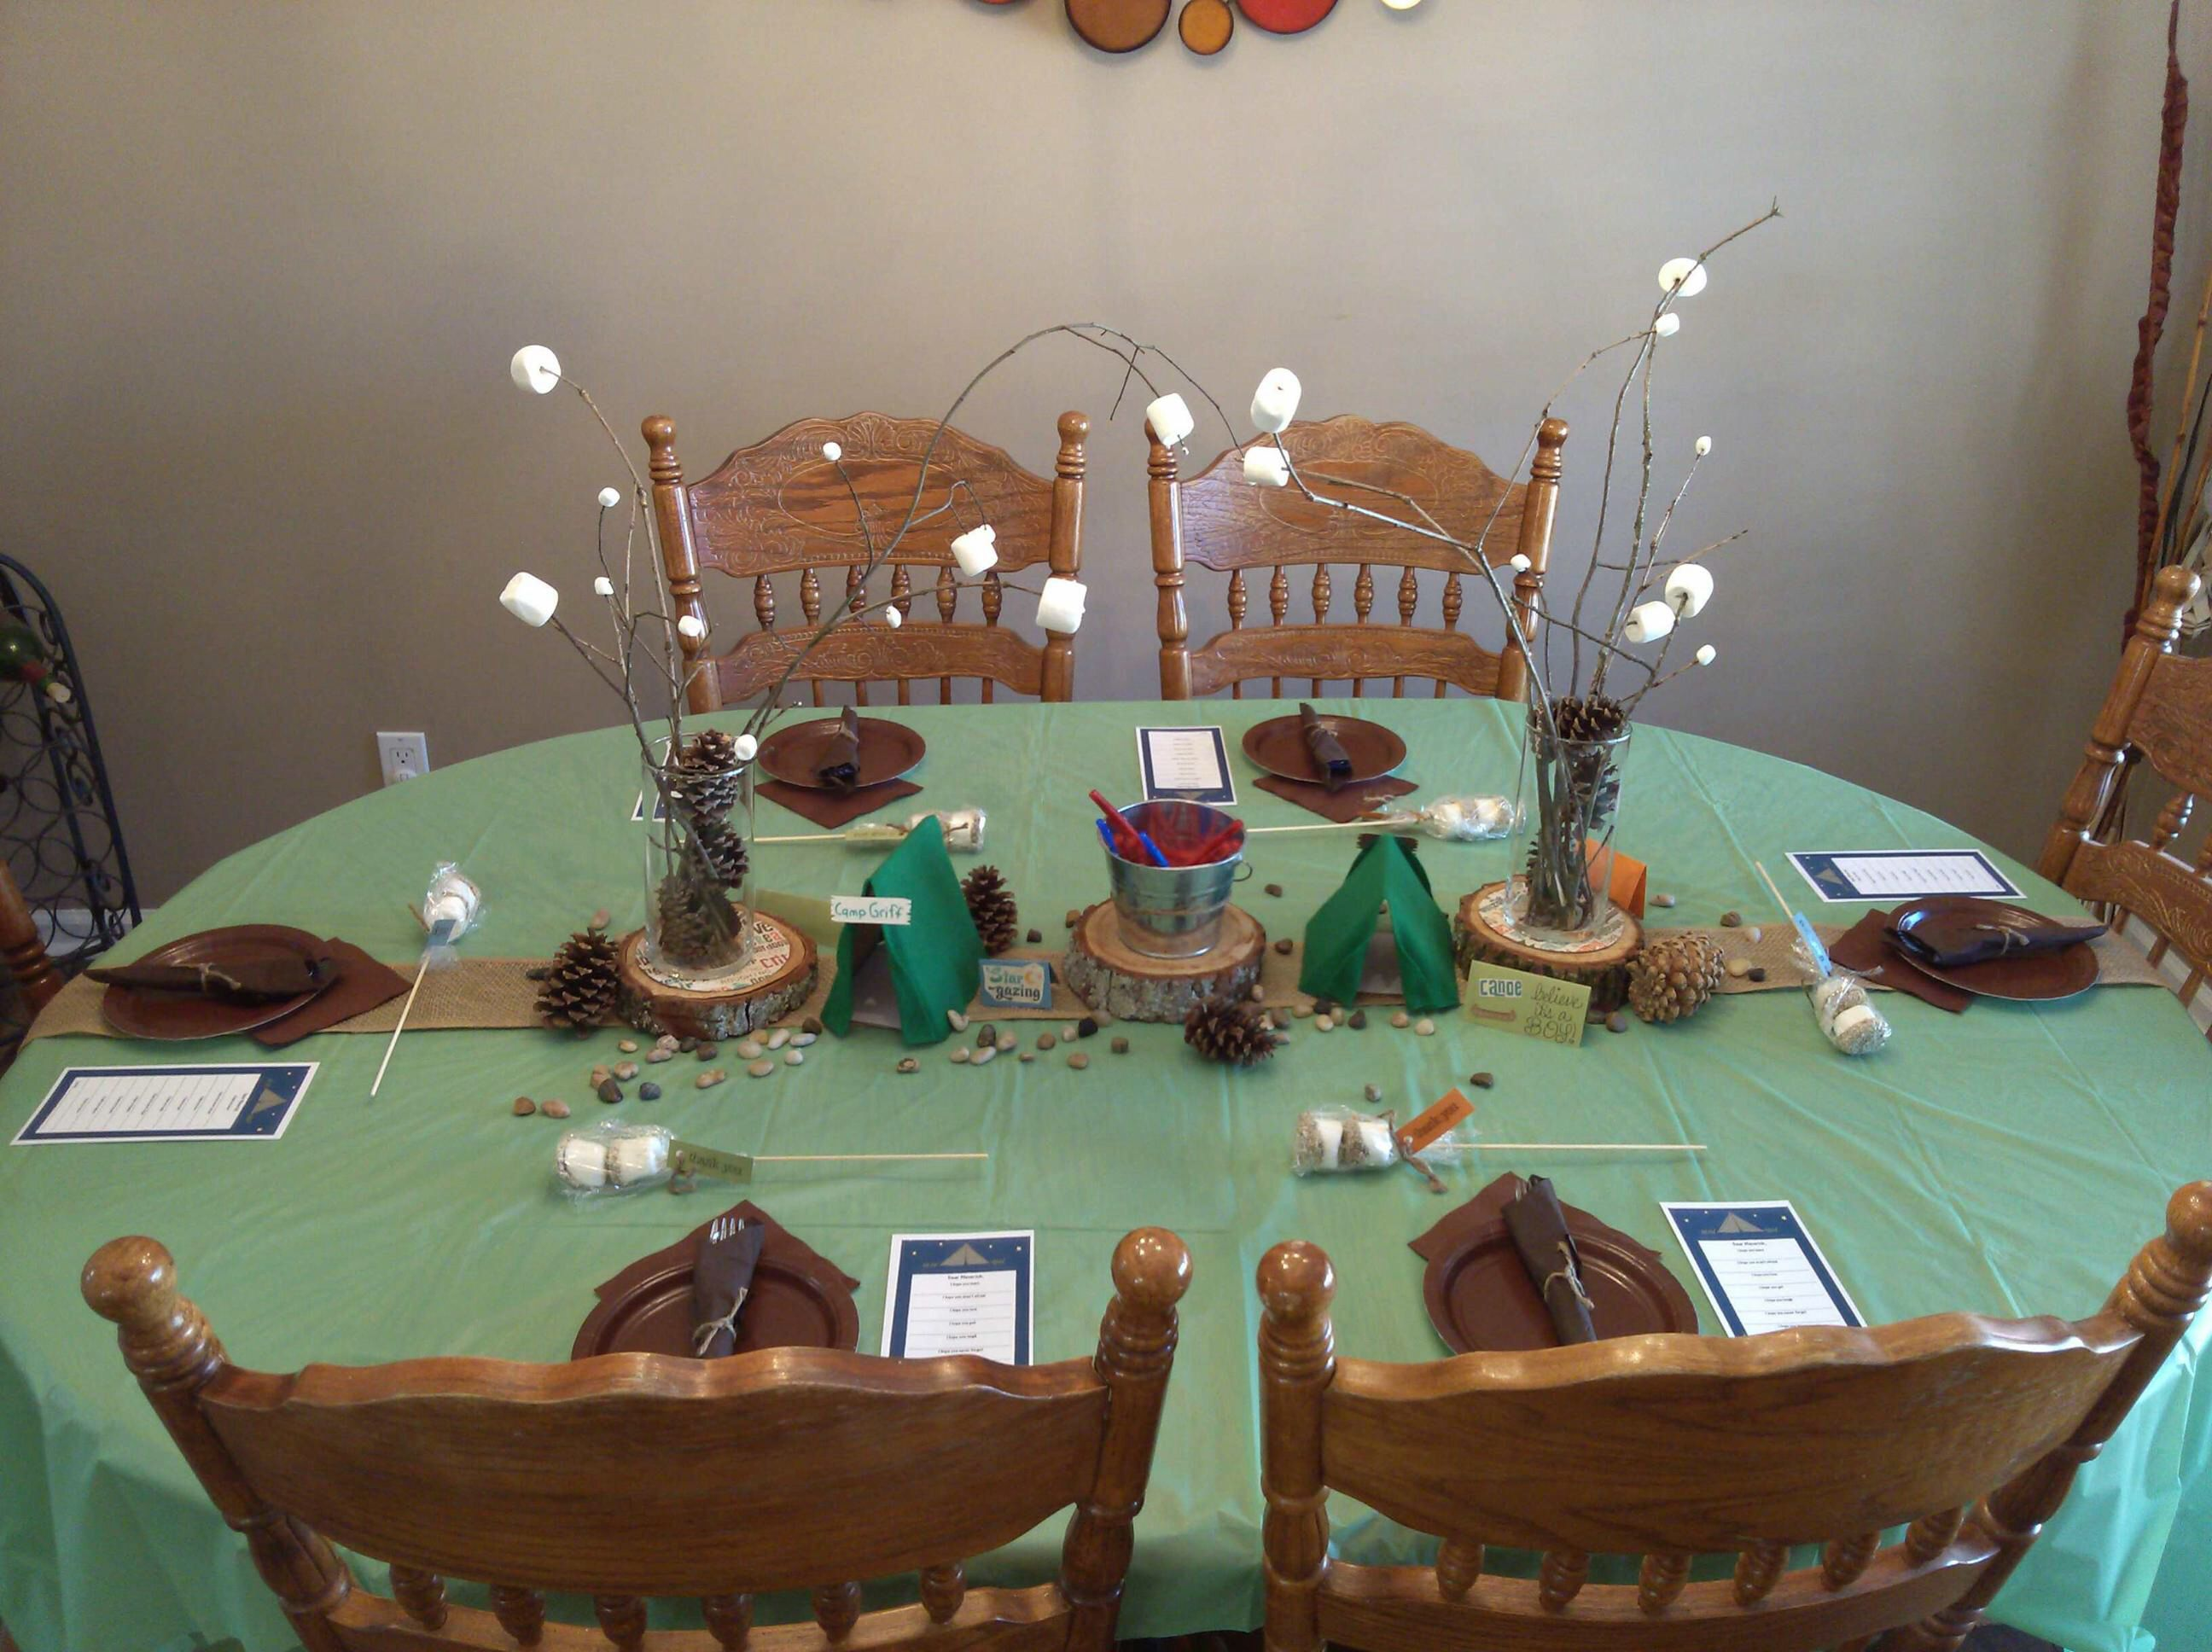 Camping Themed Baby Shower Table Setup